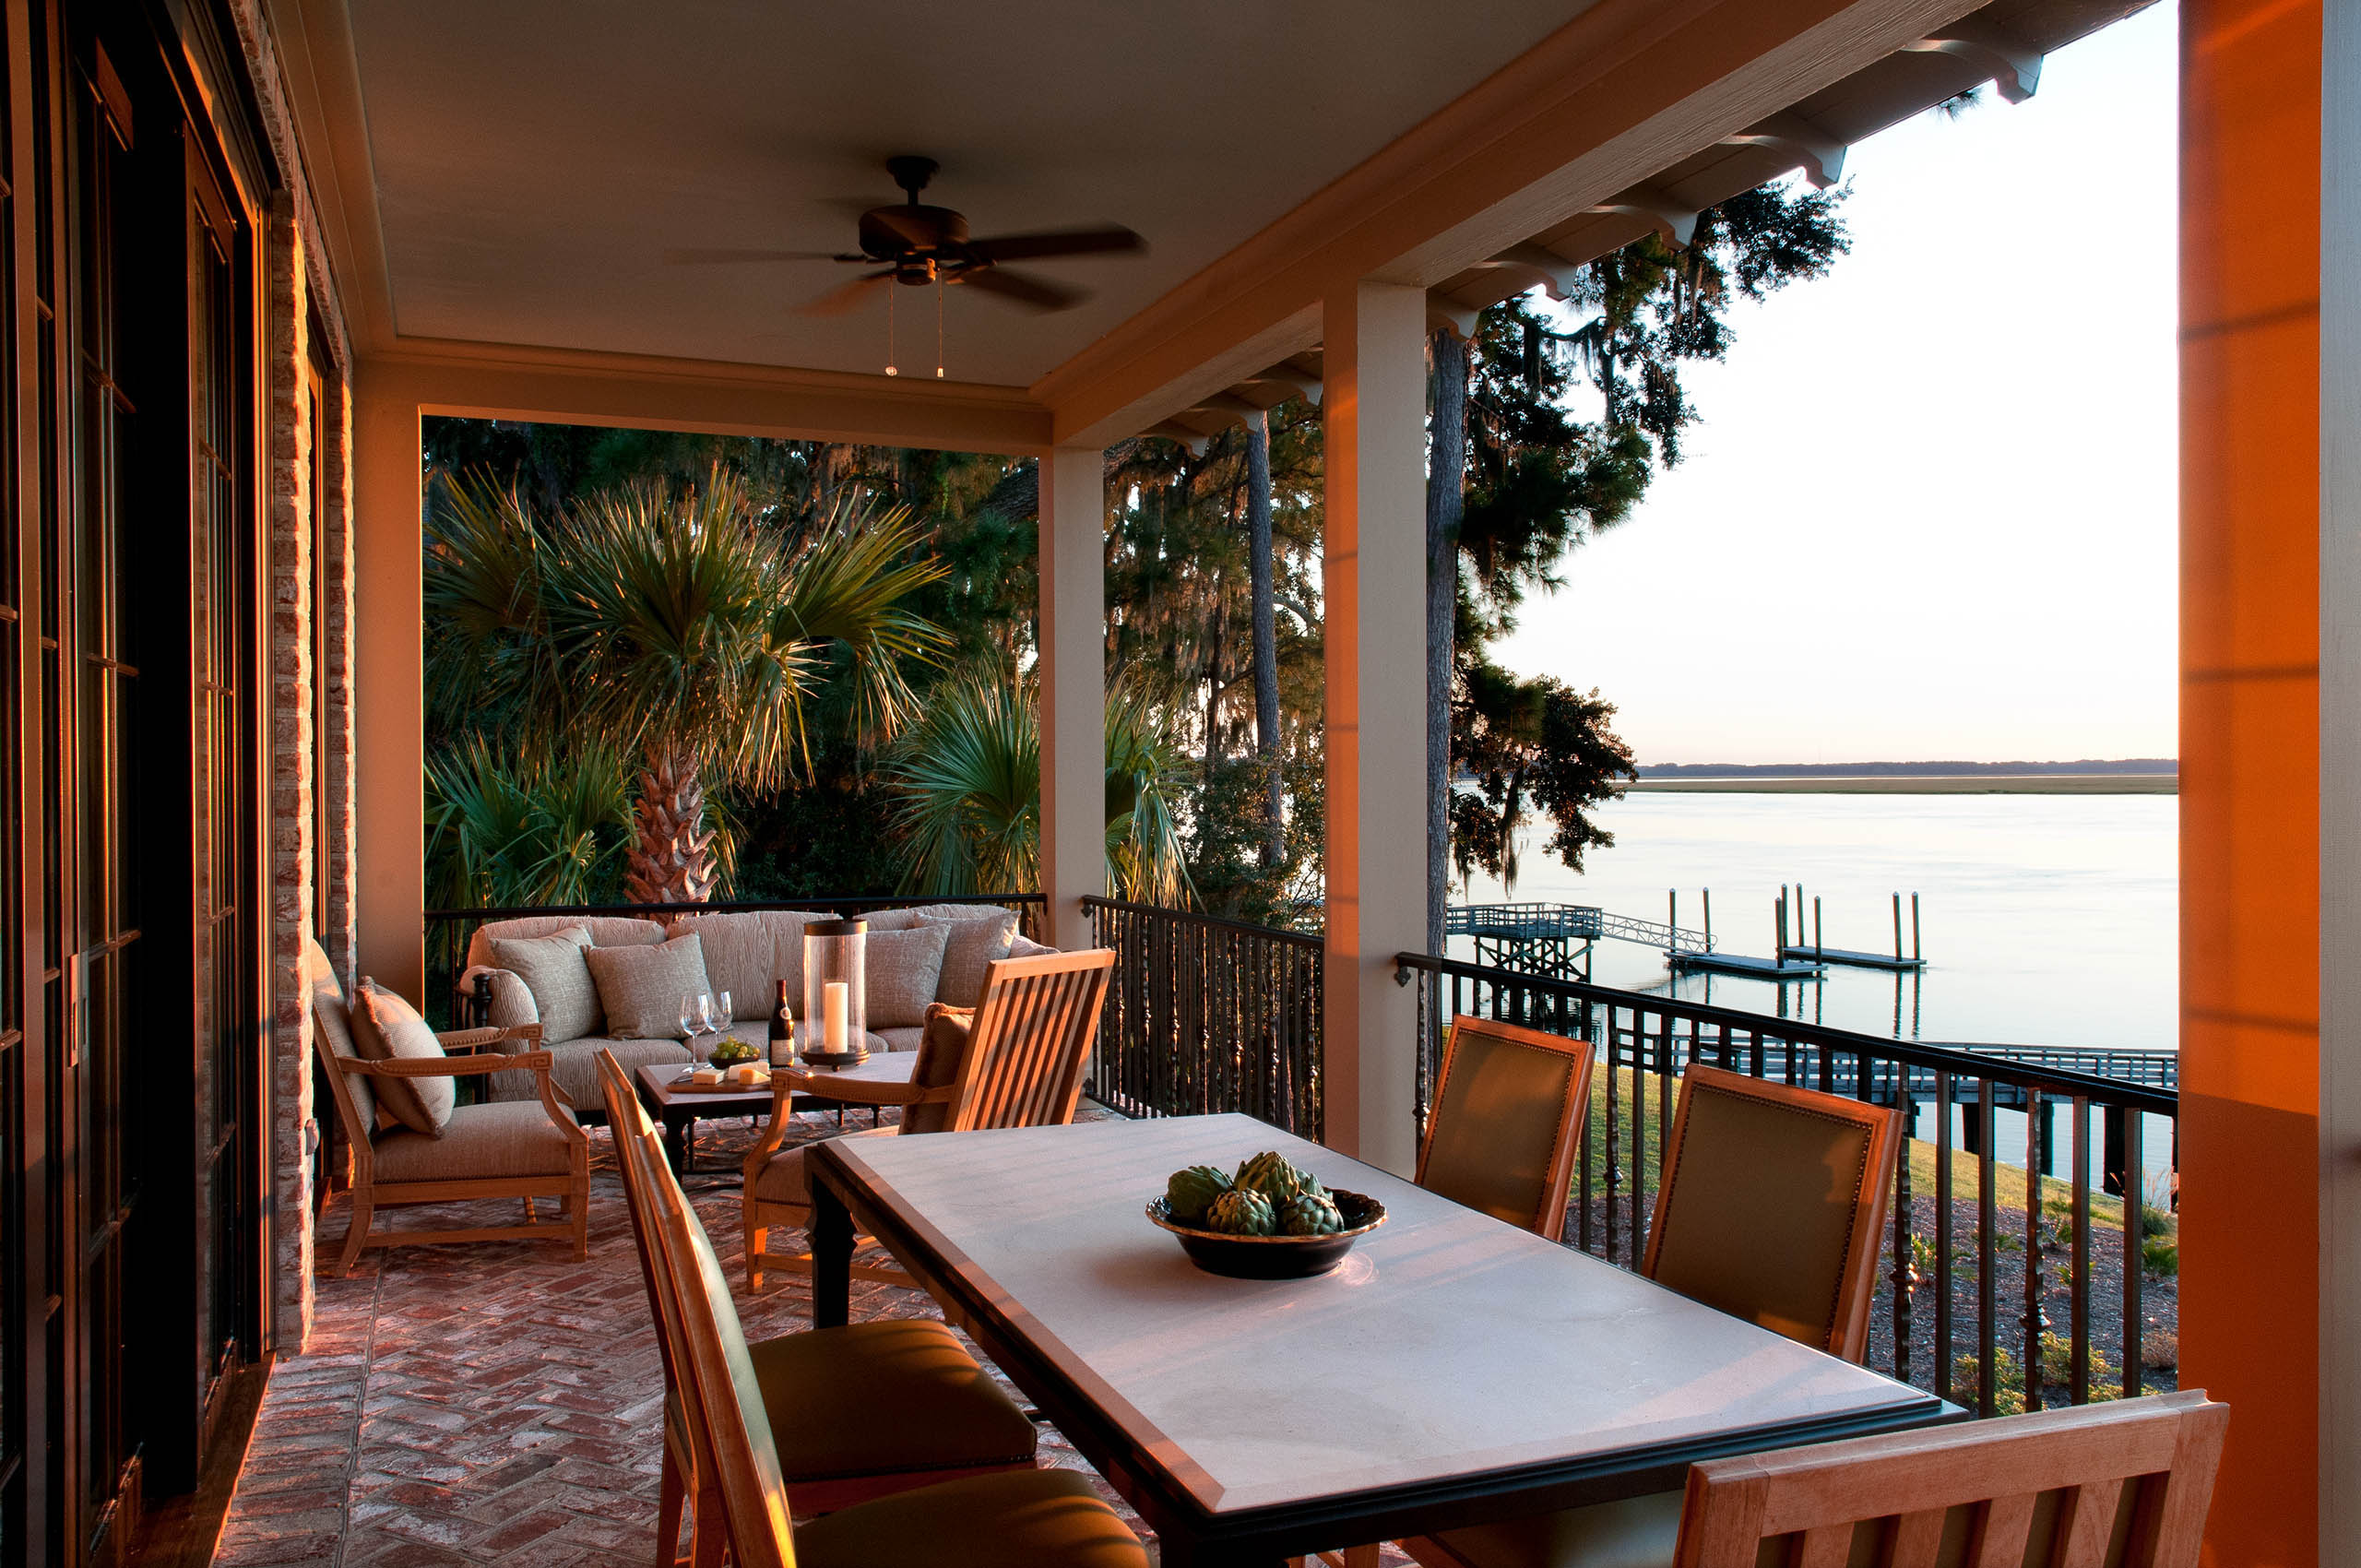 South Carolina Residence Veranda, ForrestPerkins Design Associates